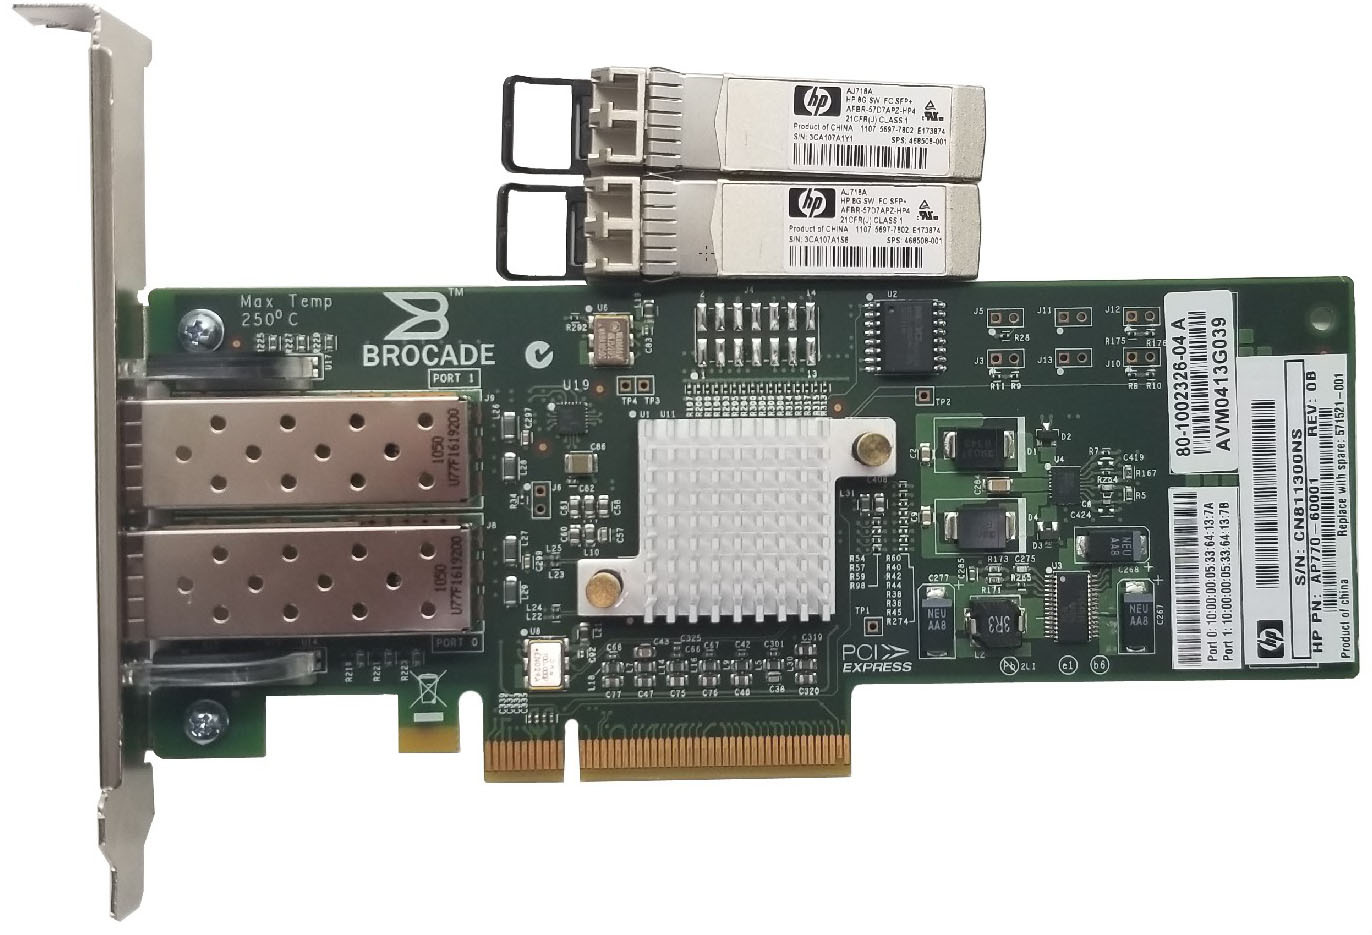 HP AP770 - 60001 DualPort Host Bus Adapter PCIe x8 With Two 8GB SFP+ Bin:10